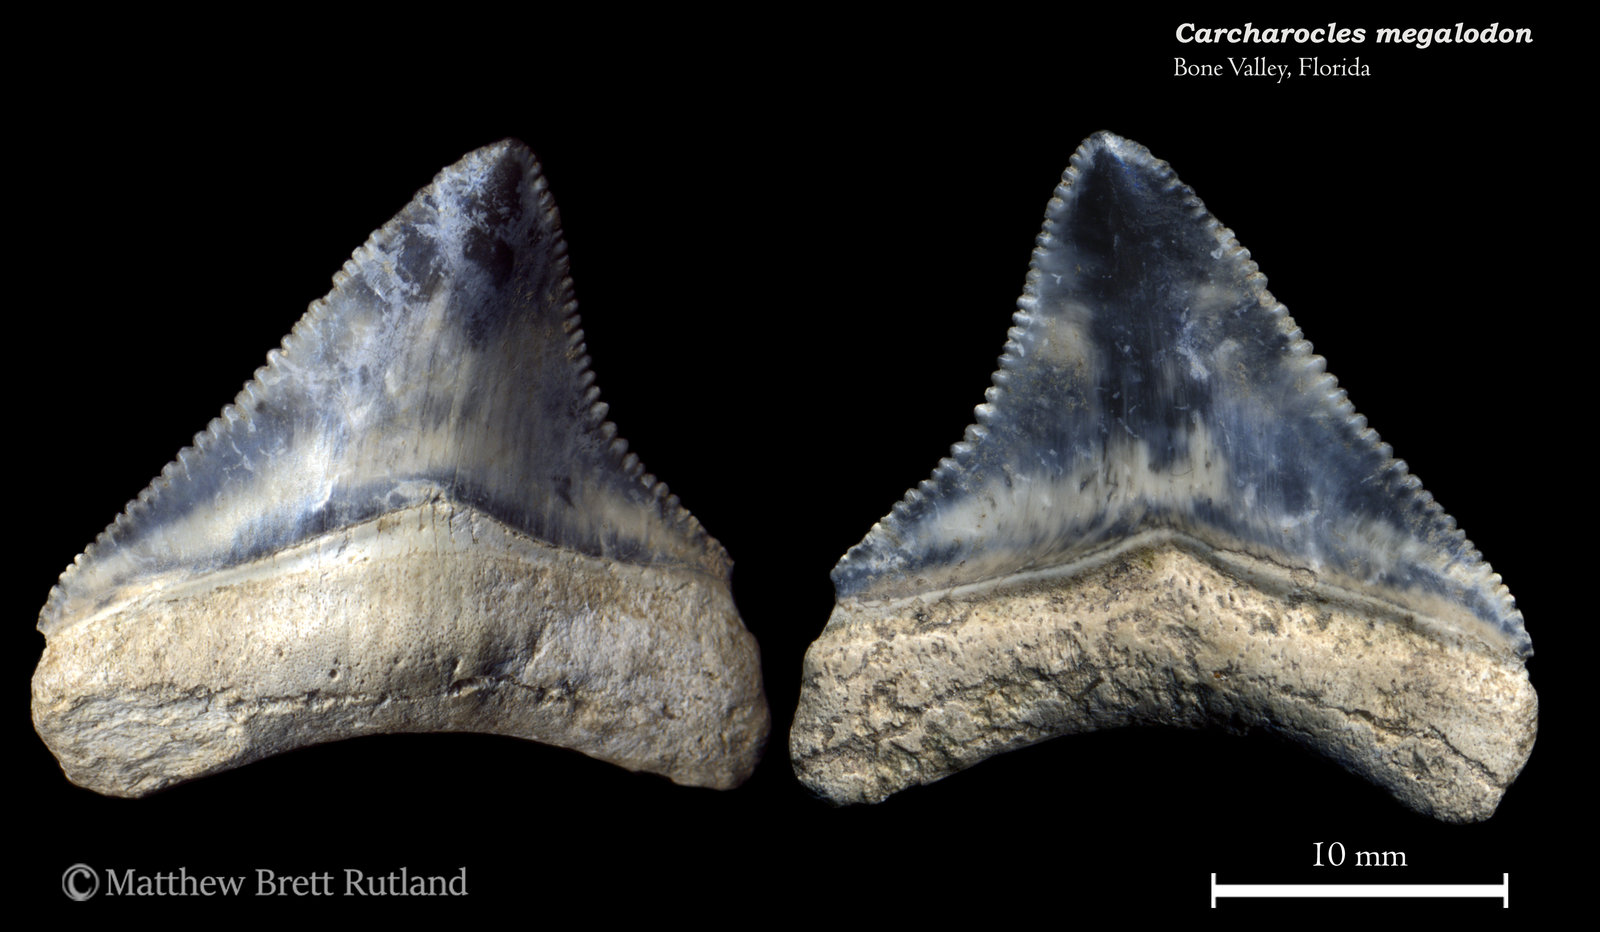 Carcharocles megalodon 08